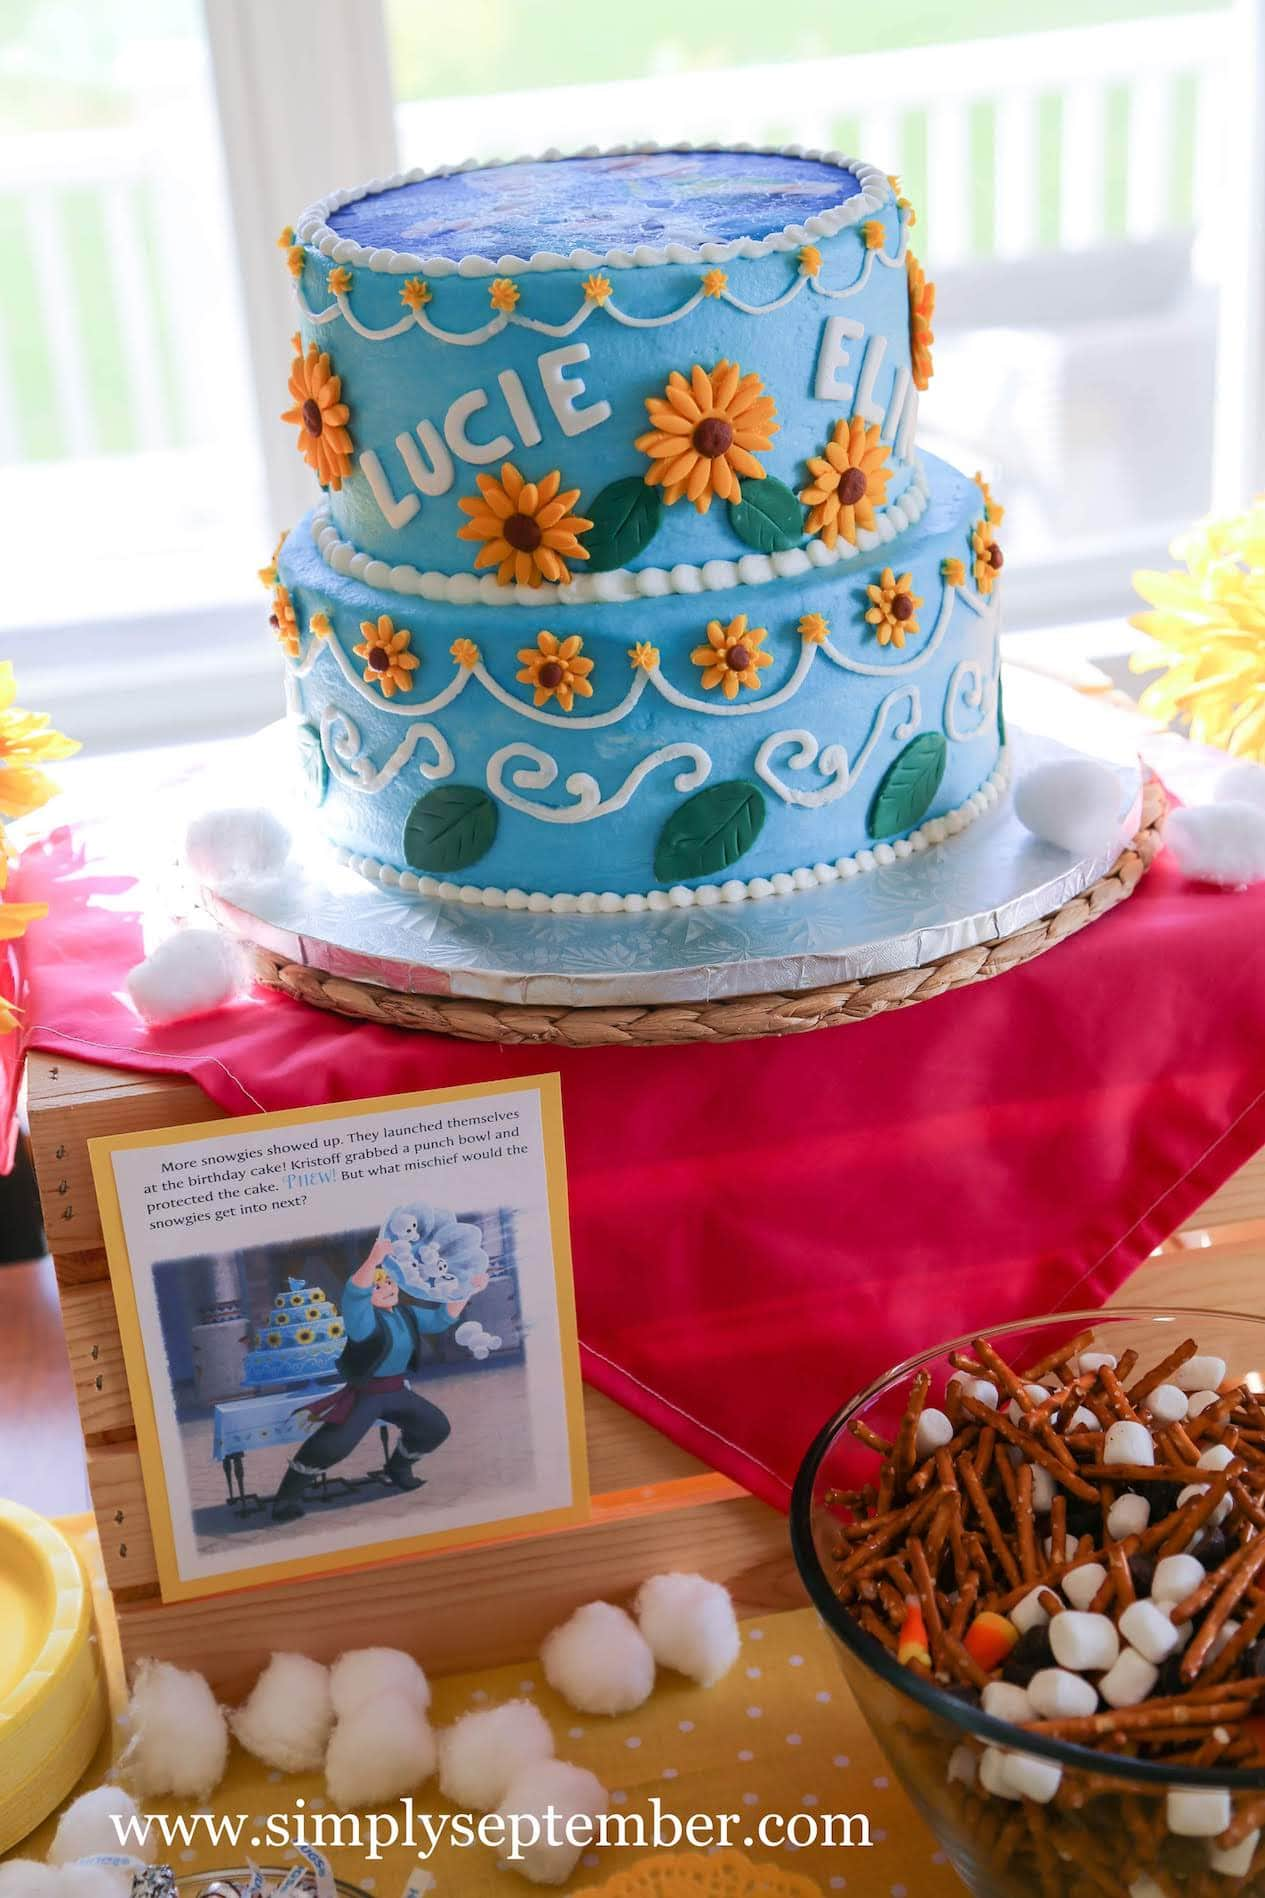 How To Plan The Ultimate Frozen Fever Birthday Party